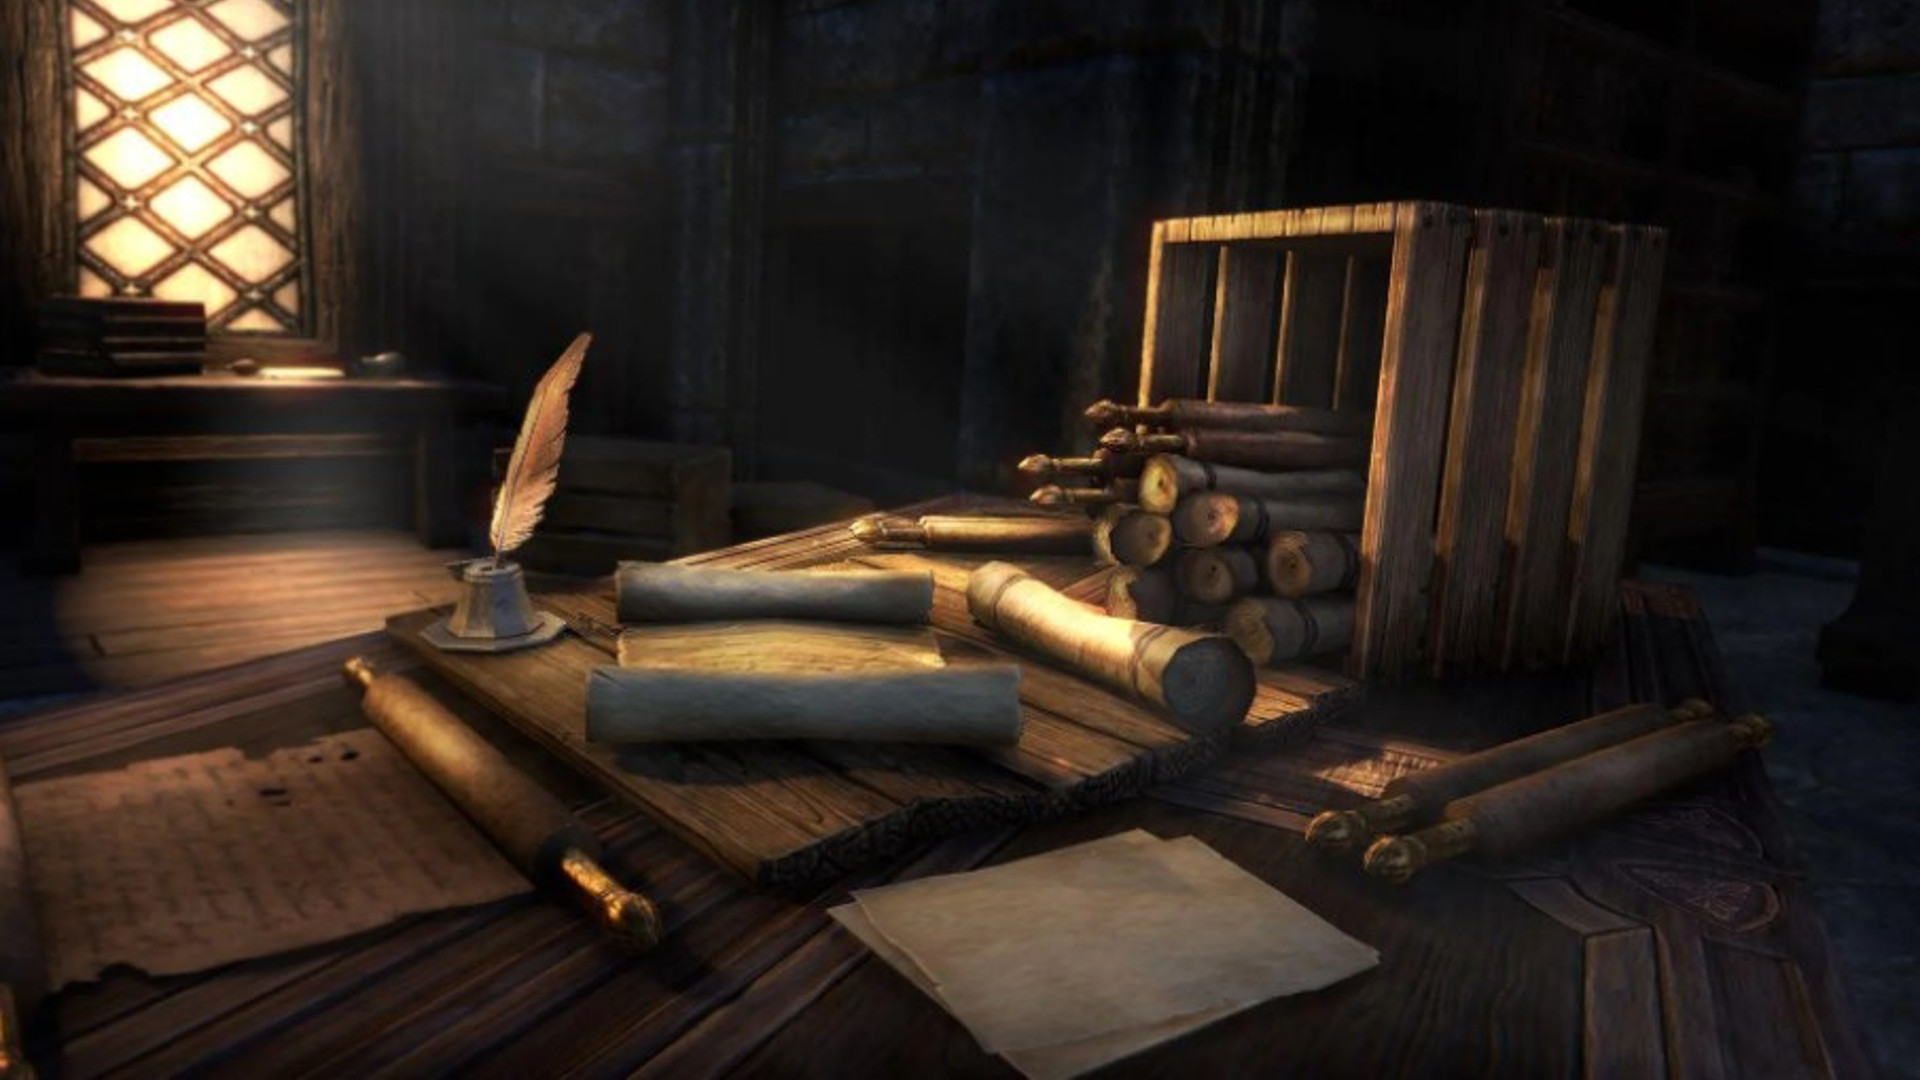 Elder Scrolls Online won't require real money for loot crates any more